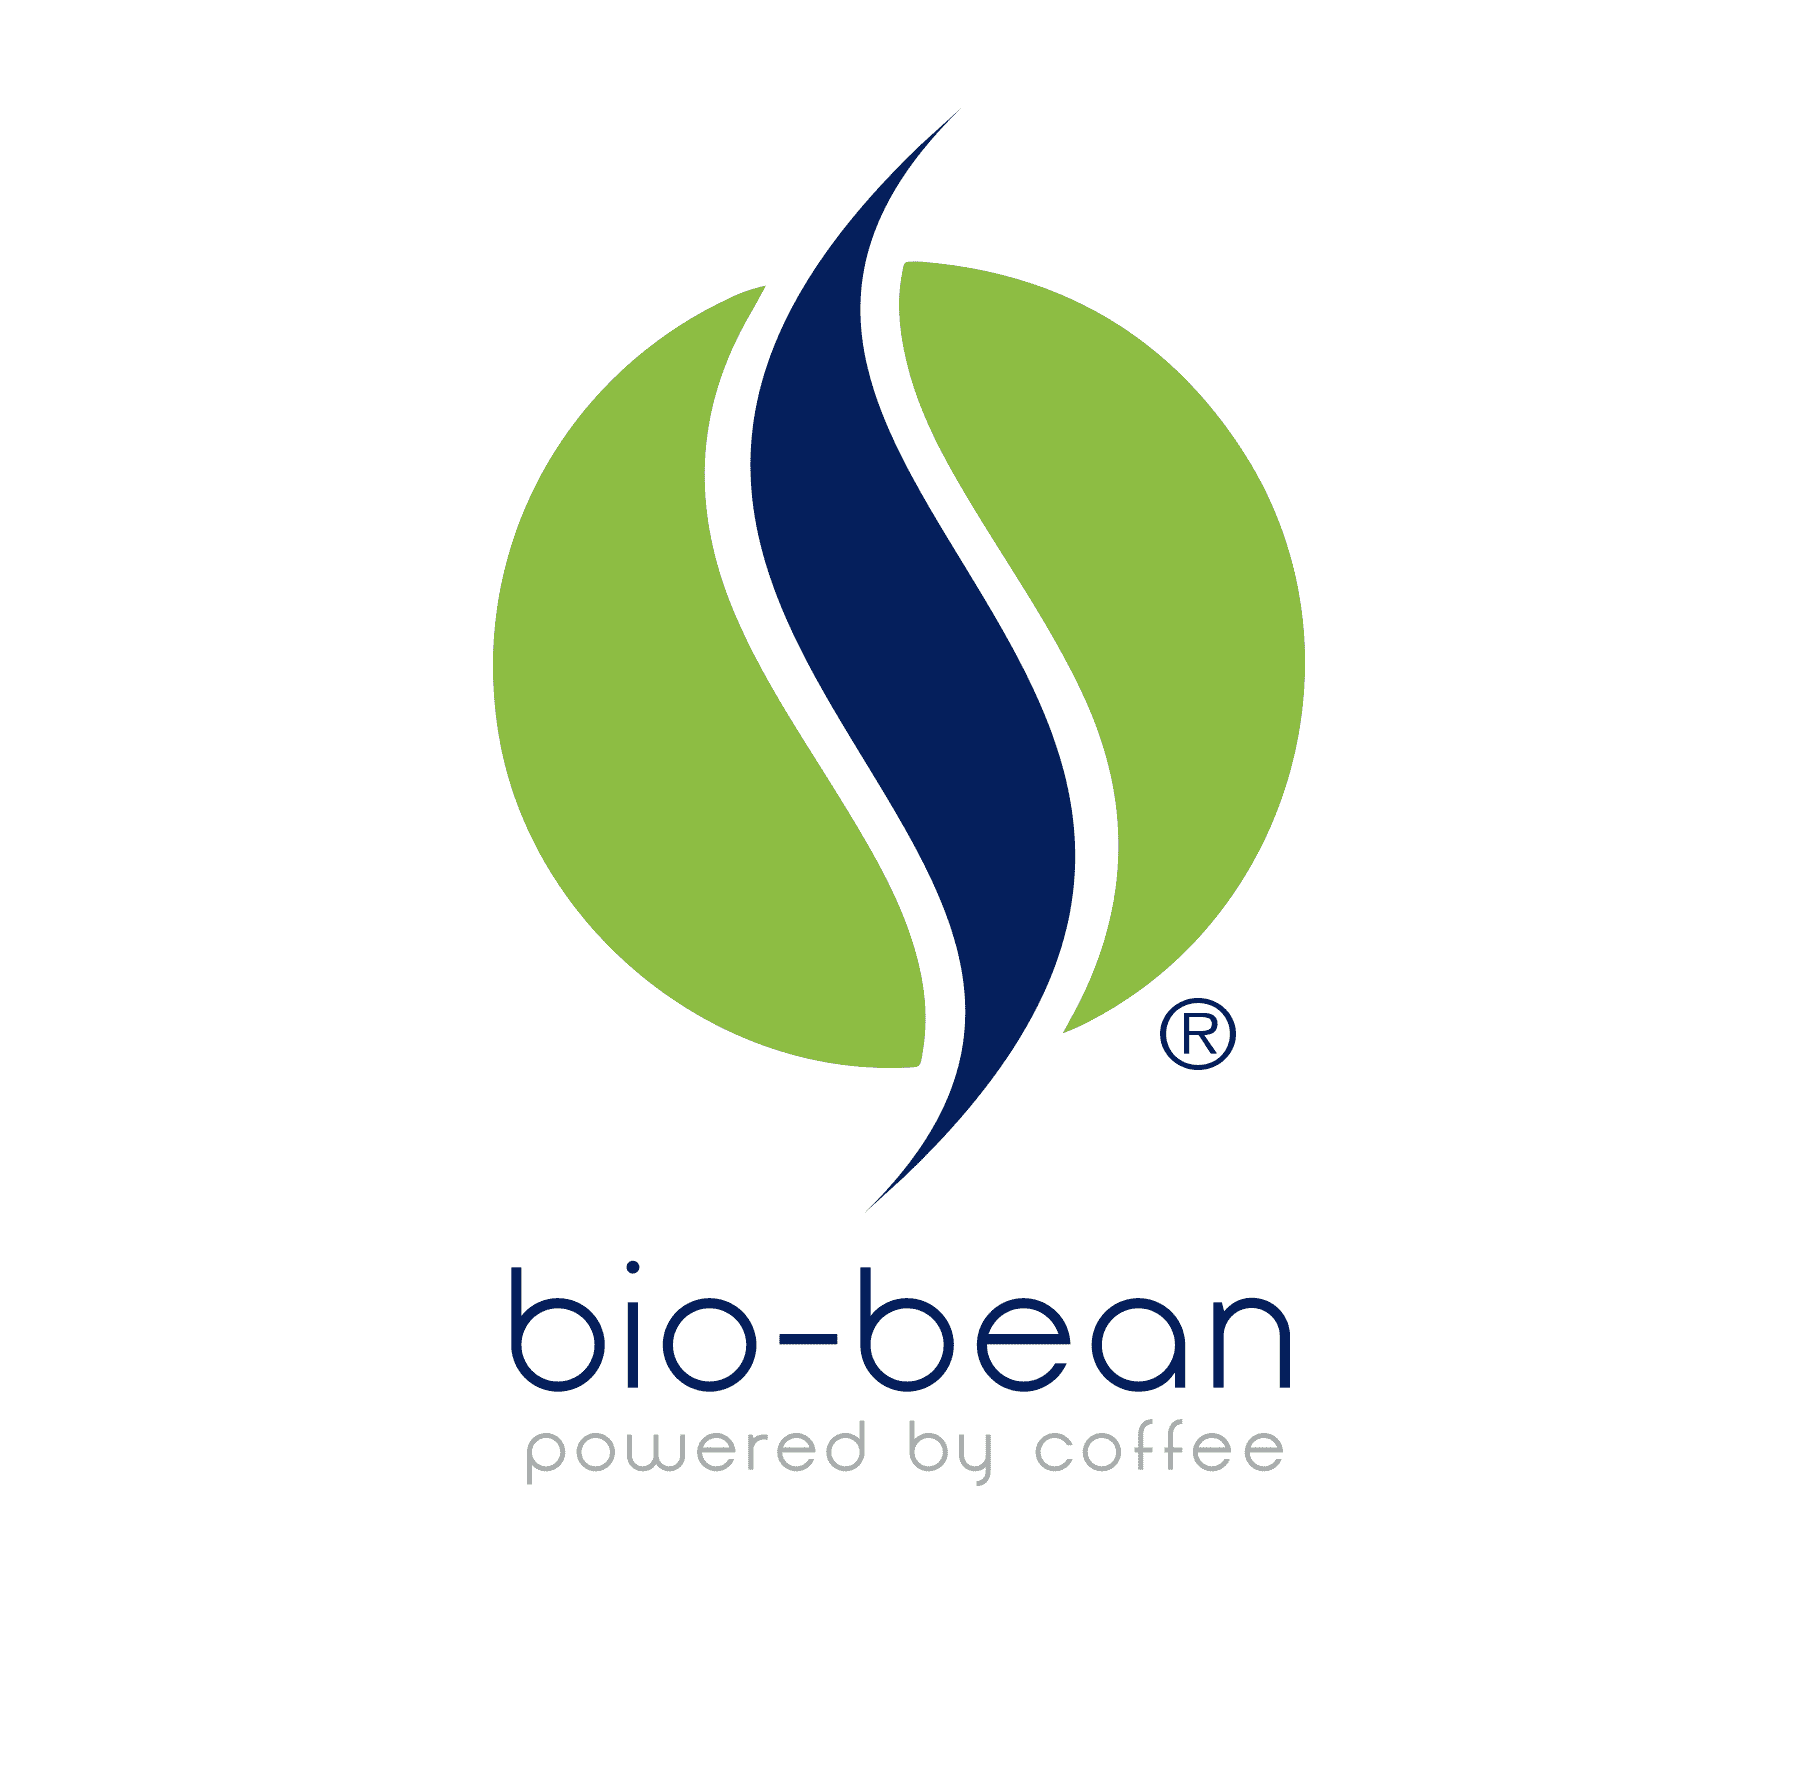 Bio bean investment real estate echo investment kielce oferty pracy radom